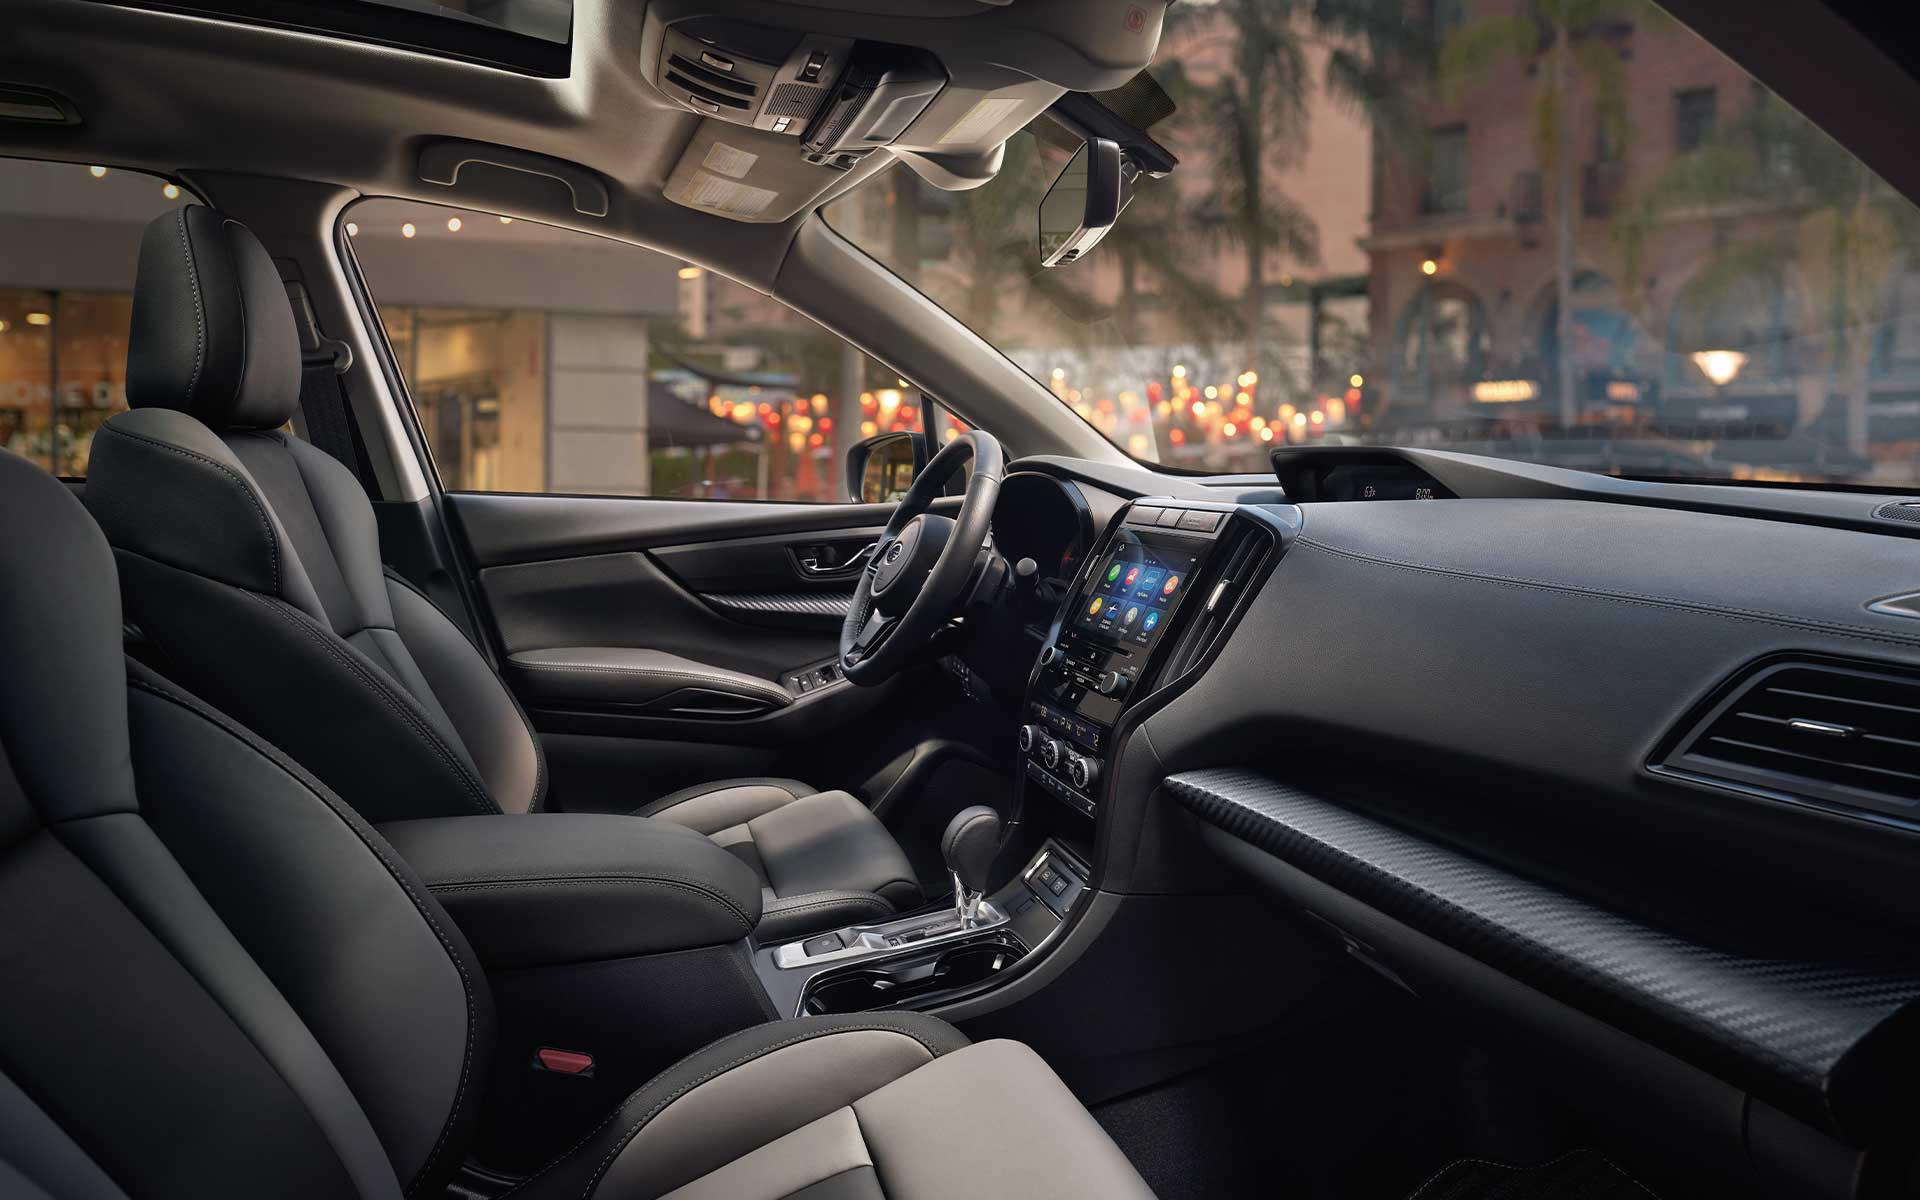 A view of the front seats showing the upgraded interior of the Subaru Ascent Onyx Edition.